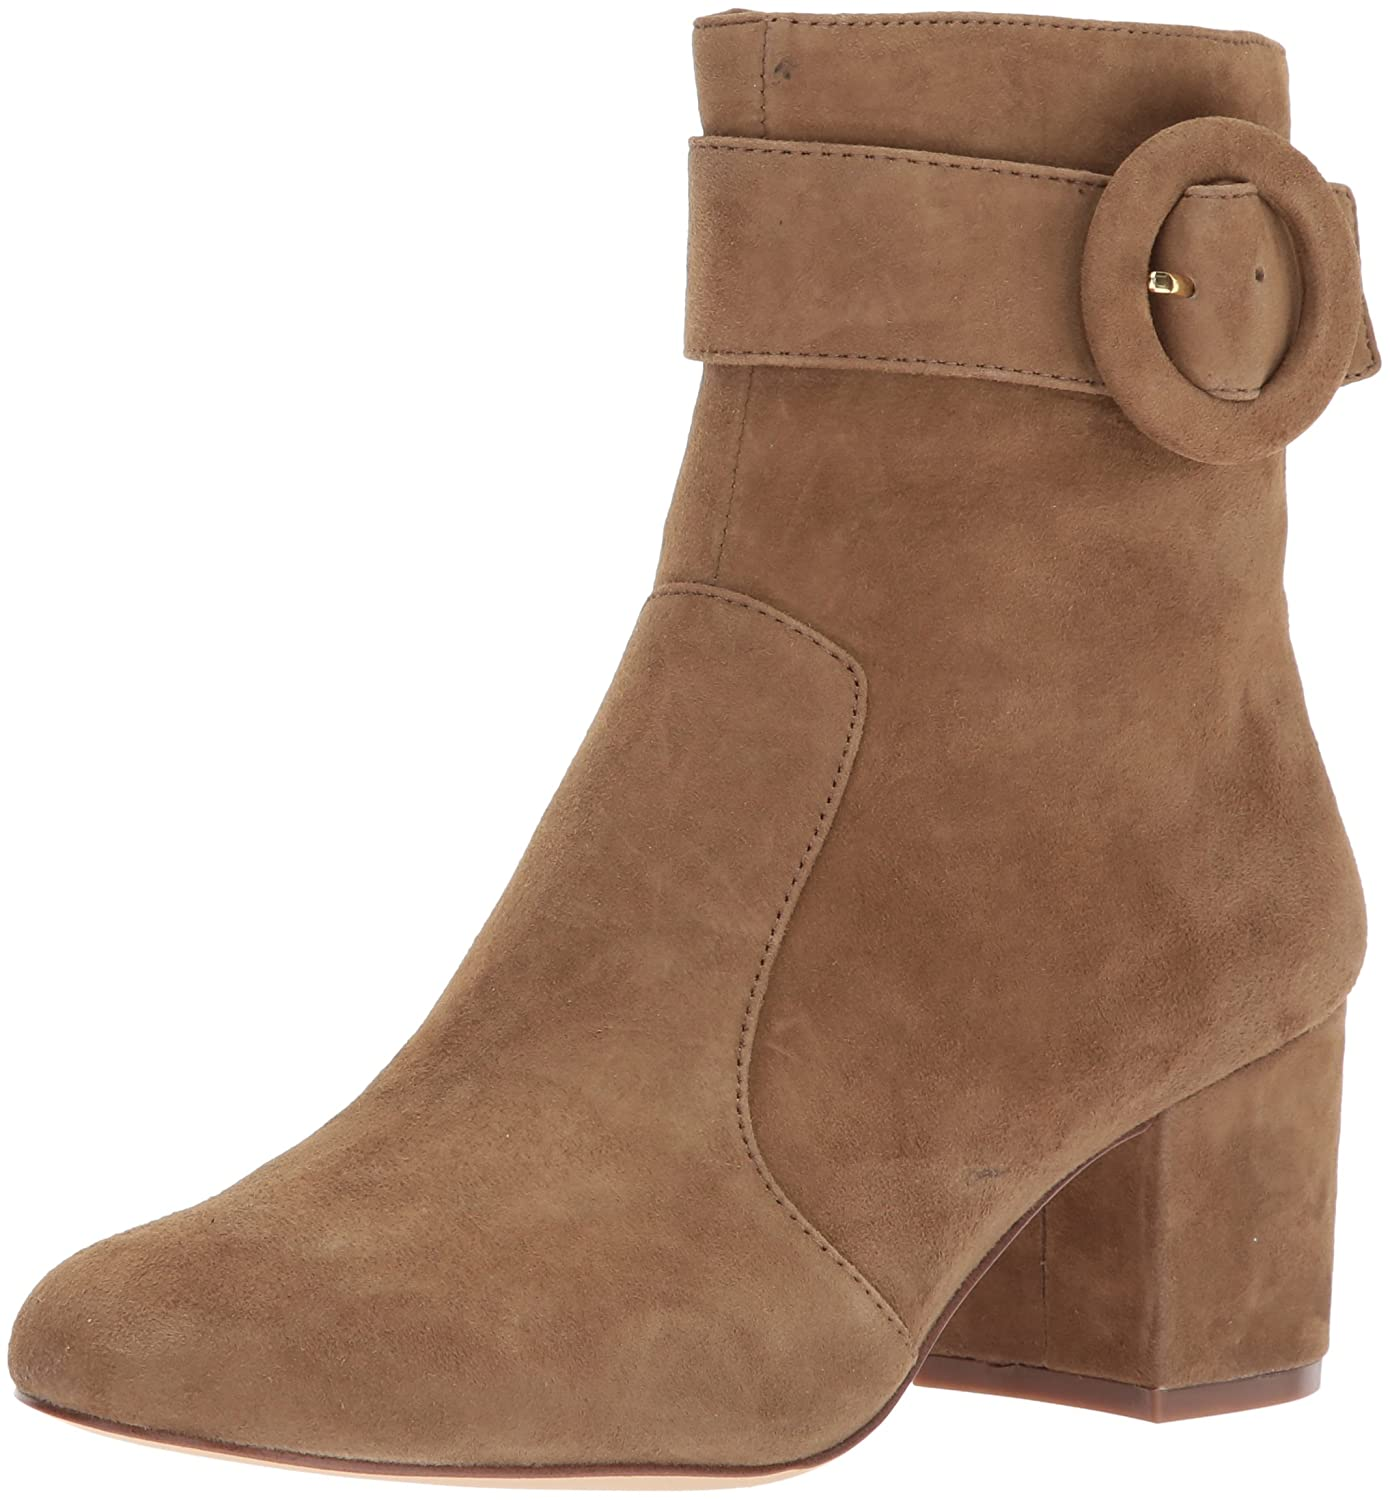 Nine West Women's Quilby Suede Ankle Boot B01MUS6S16 8 B(M) US|Clove